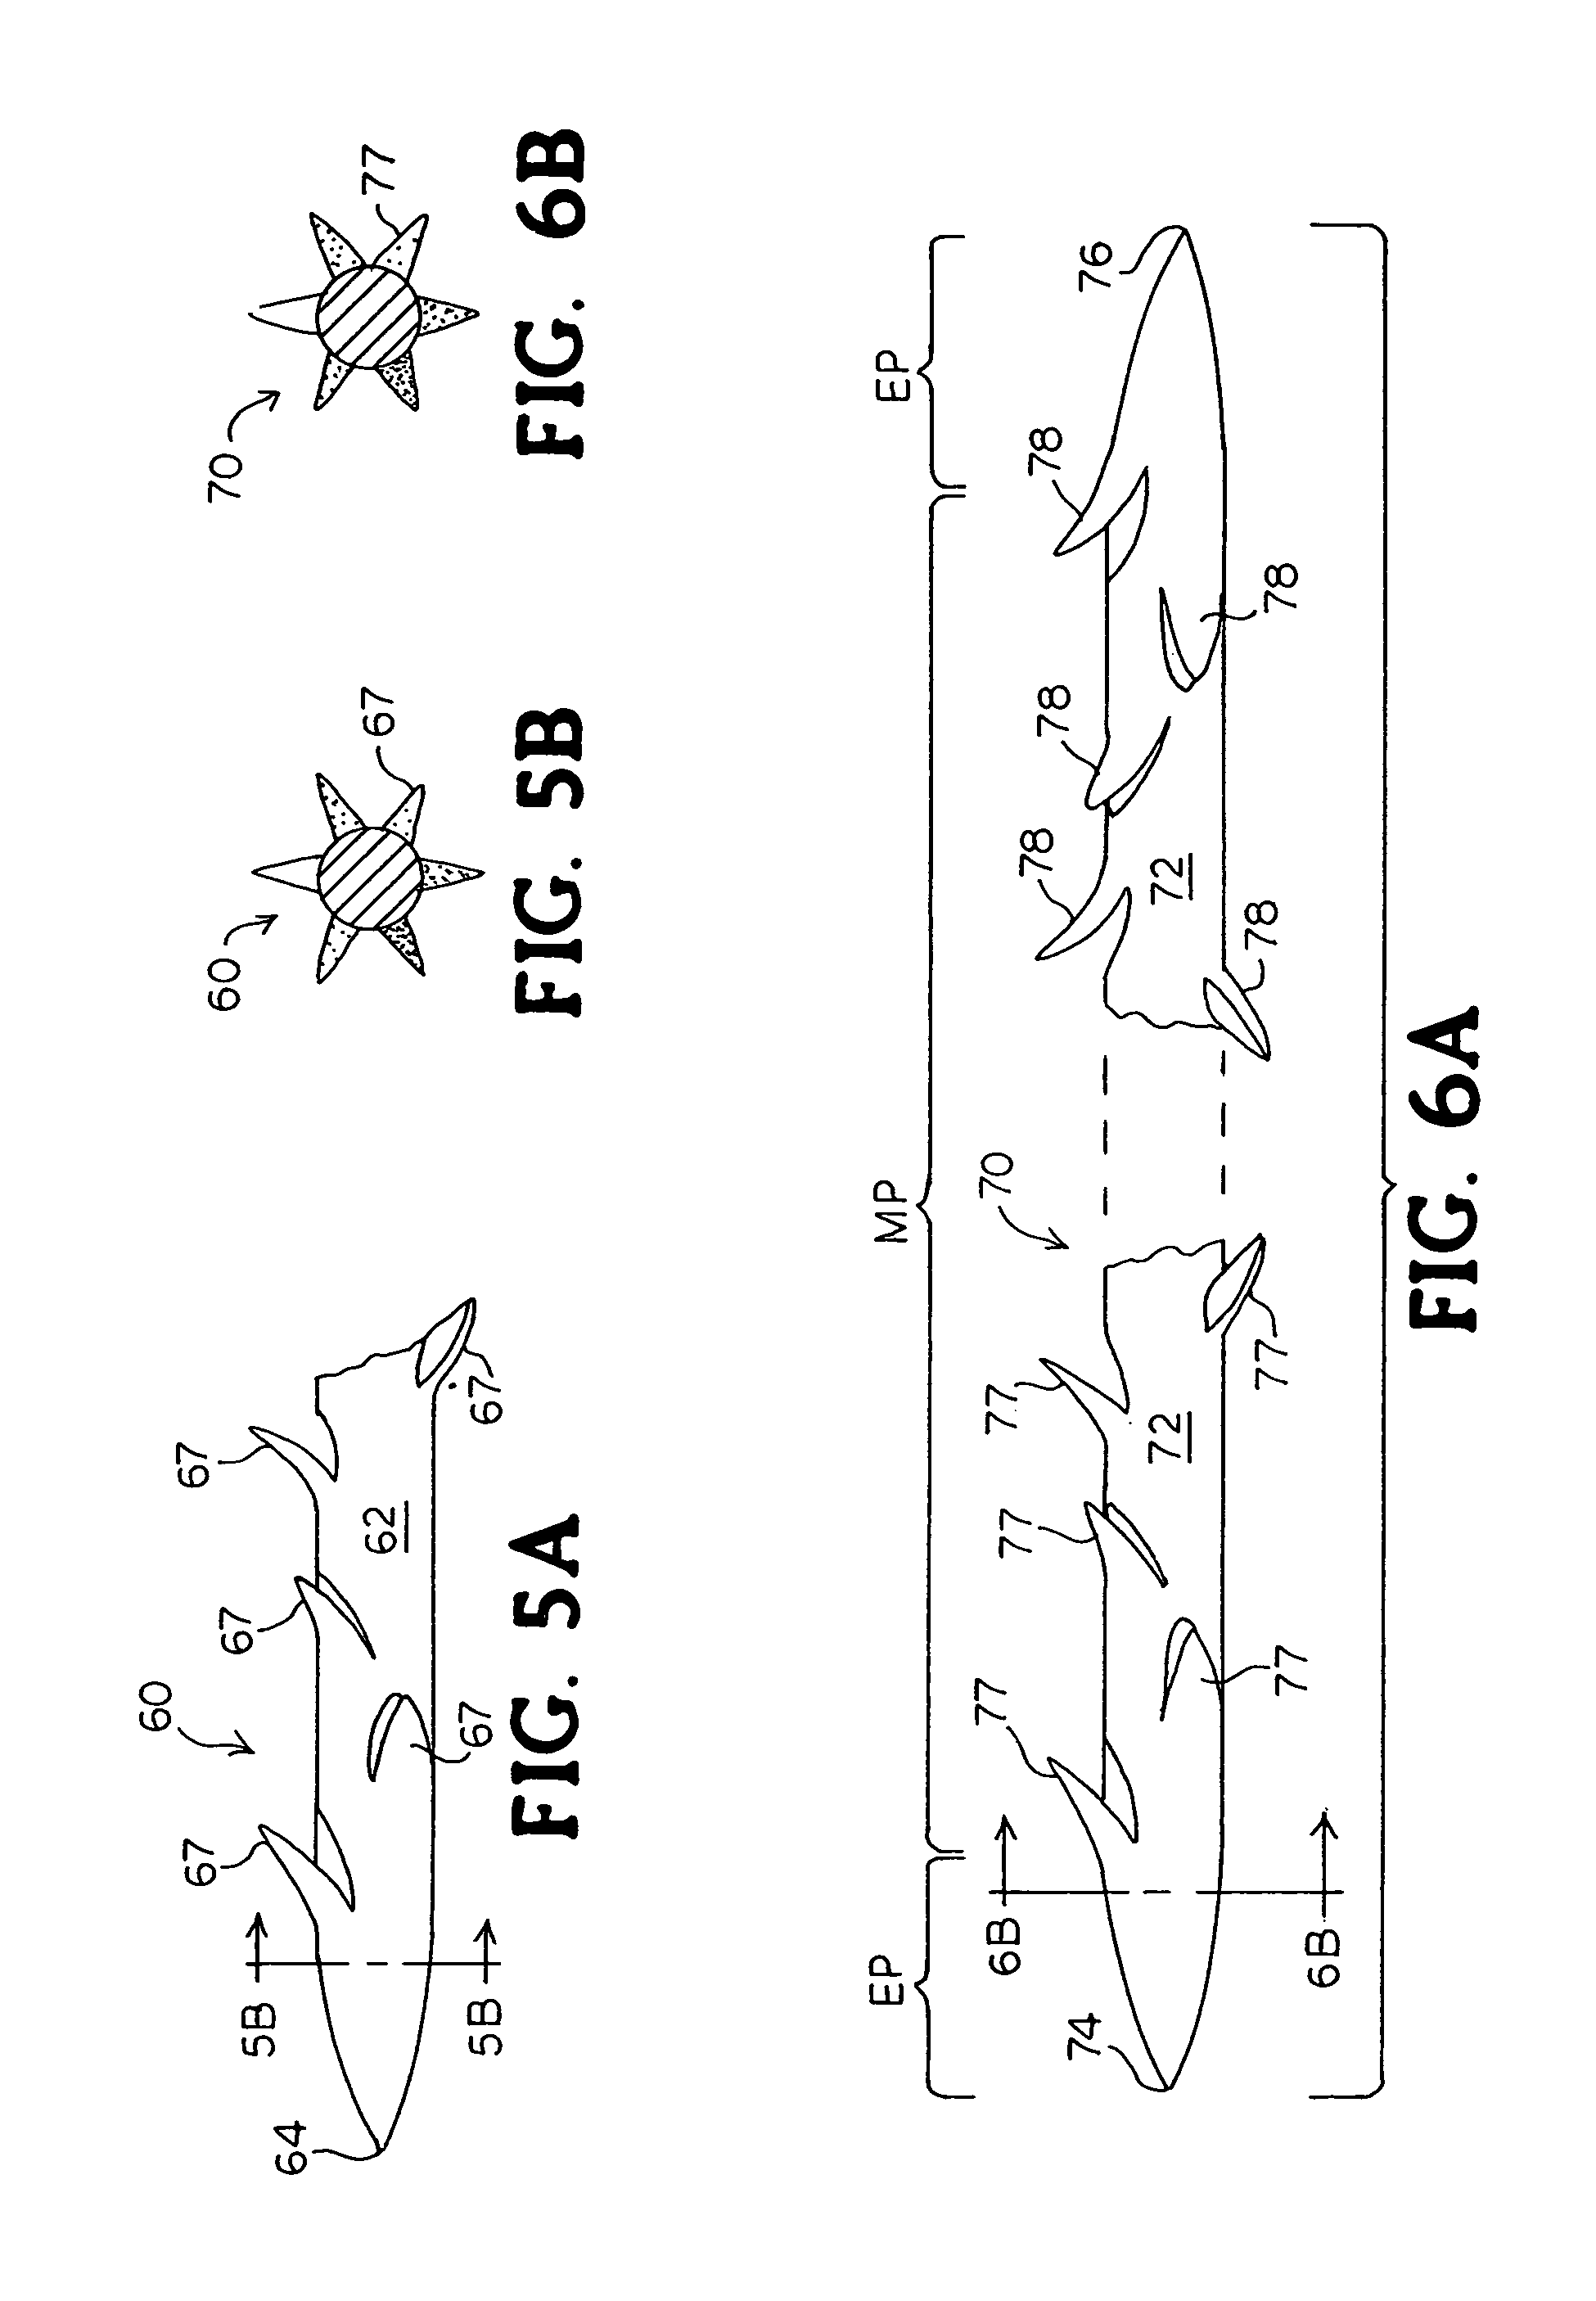 Patent Us 8795332 B2 Begin By Making A Slip Knot In The Binder Yarn Diagrams 1 2 And 3